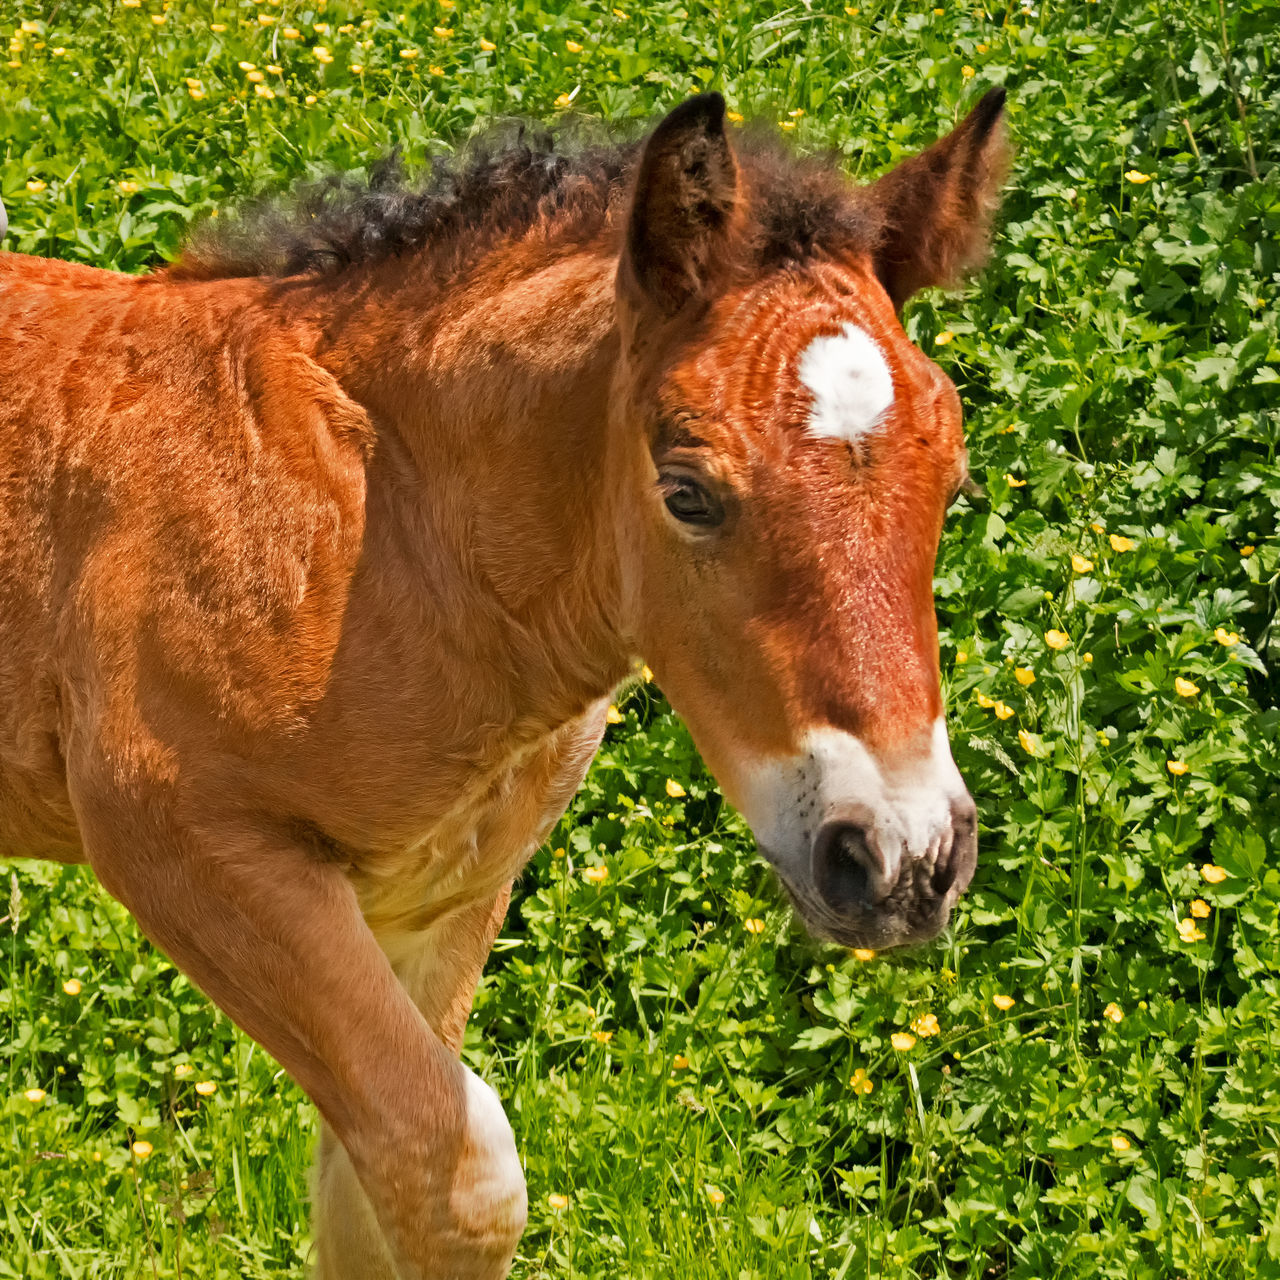 Baby brown horse closeup Animal Body Part Animal Head  Animal Themes Baby Horse Brown Horse Close-up Domestic Animals Field Focus On Foreground Grass Herbivorous No People Outdoors Portrait Nature's Diversities Showcase May Minimalism Animal Photography